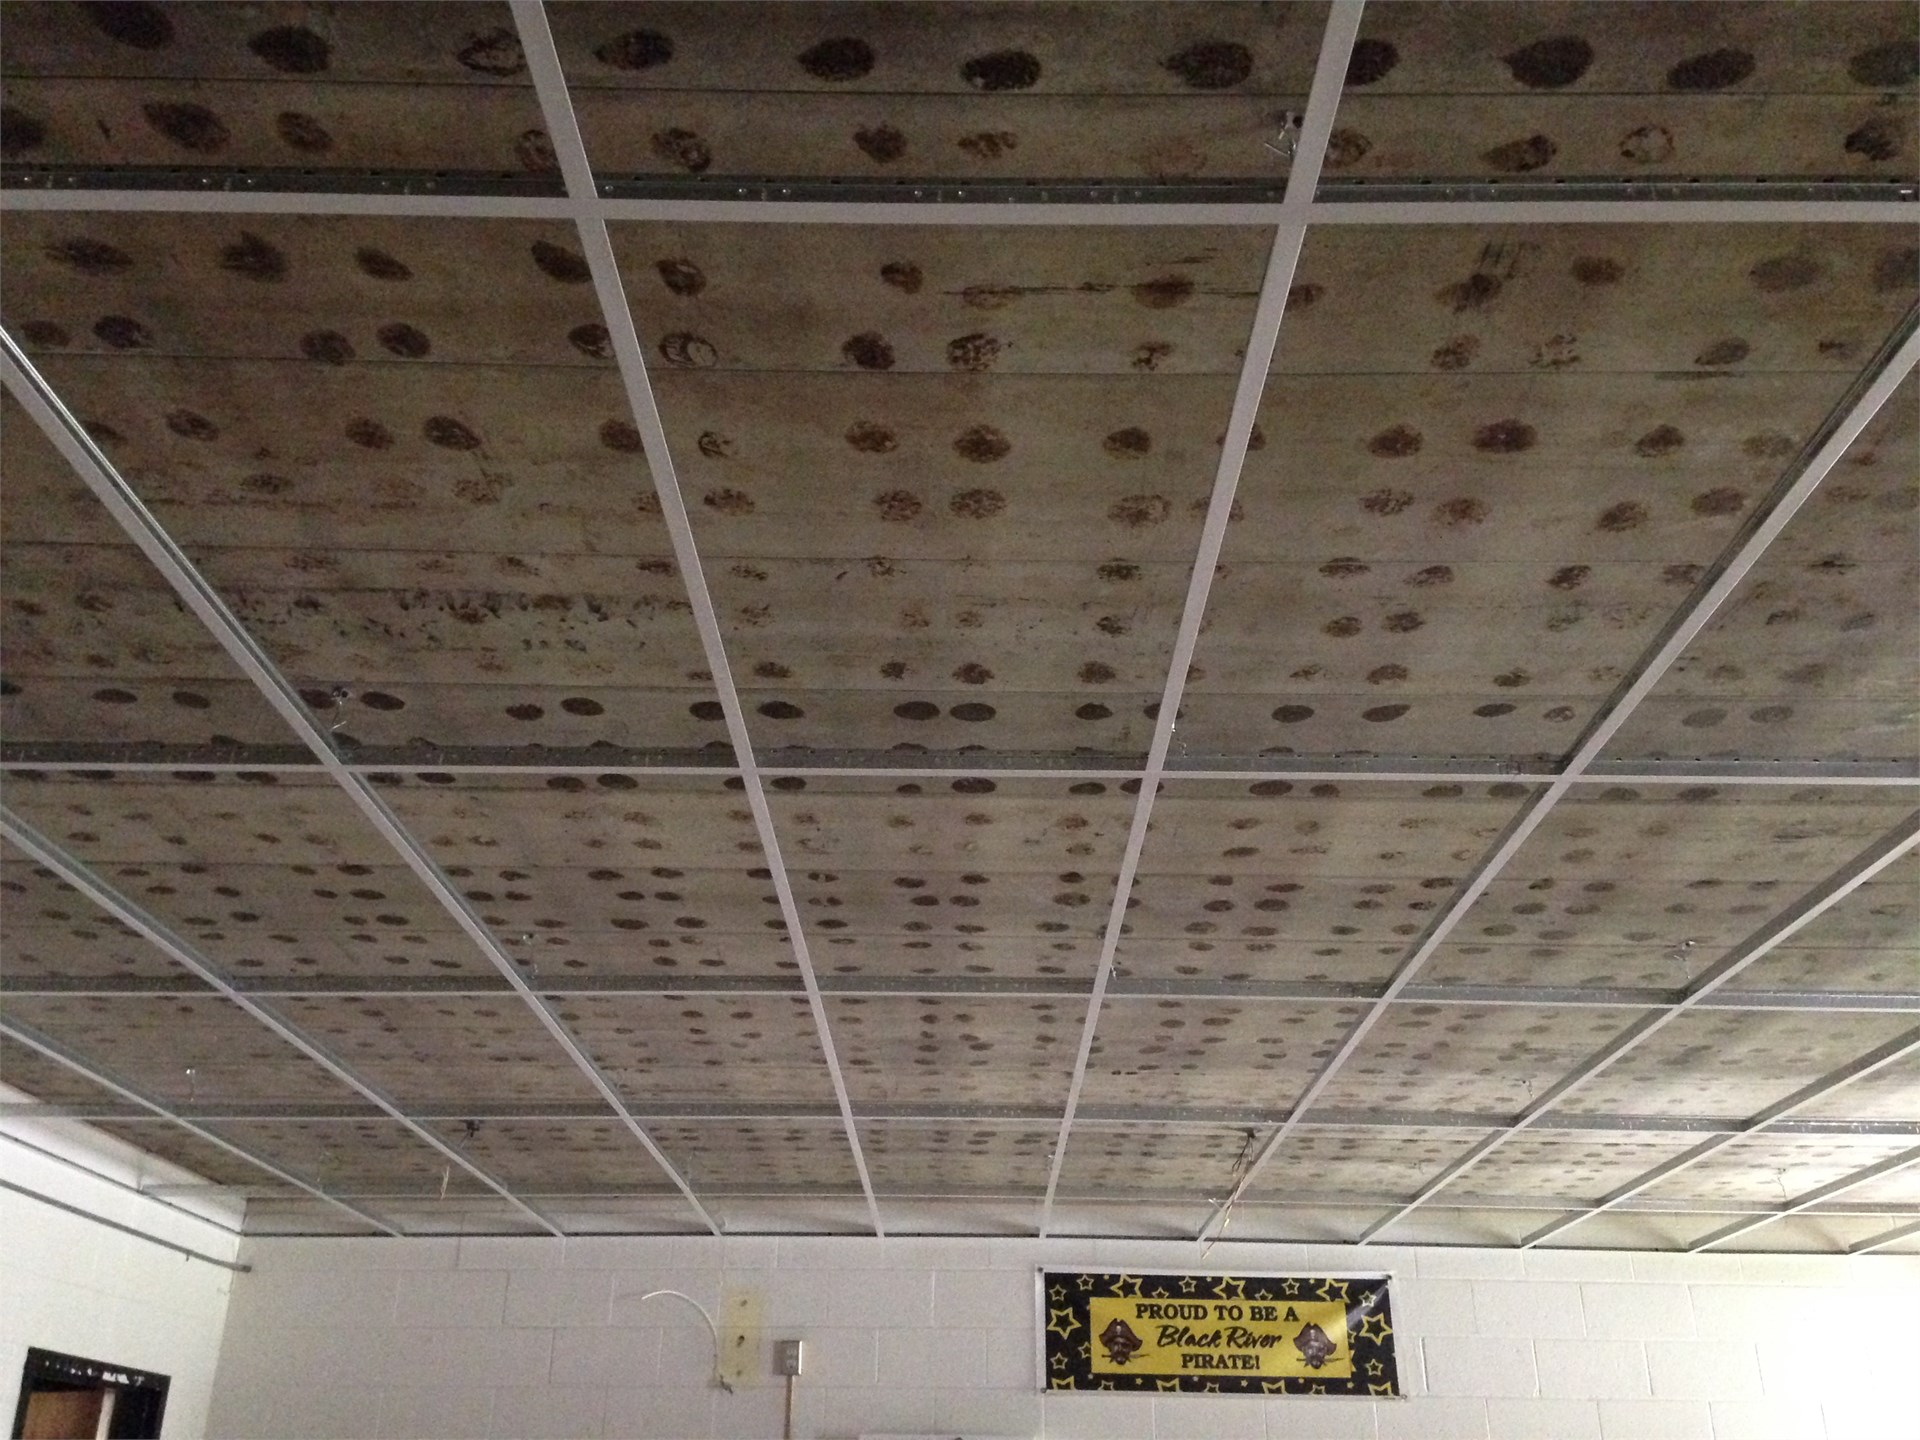 Ceiling Grid being placed